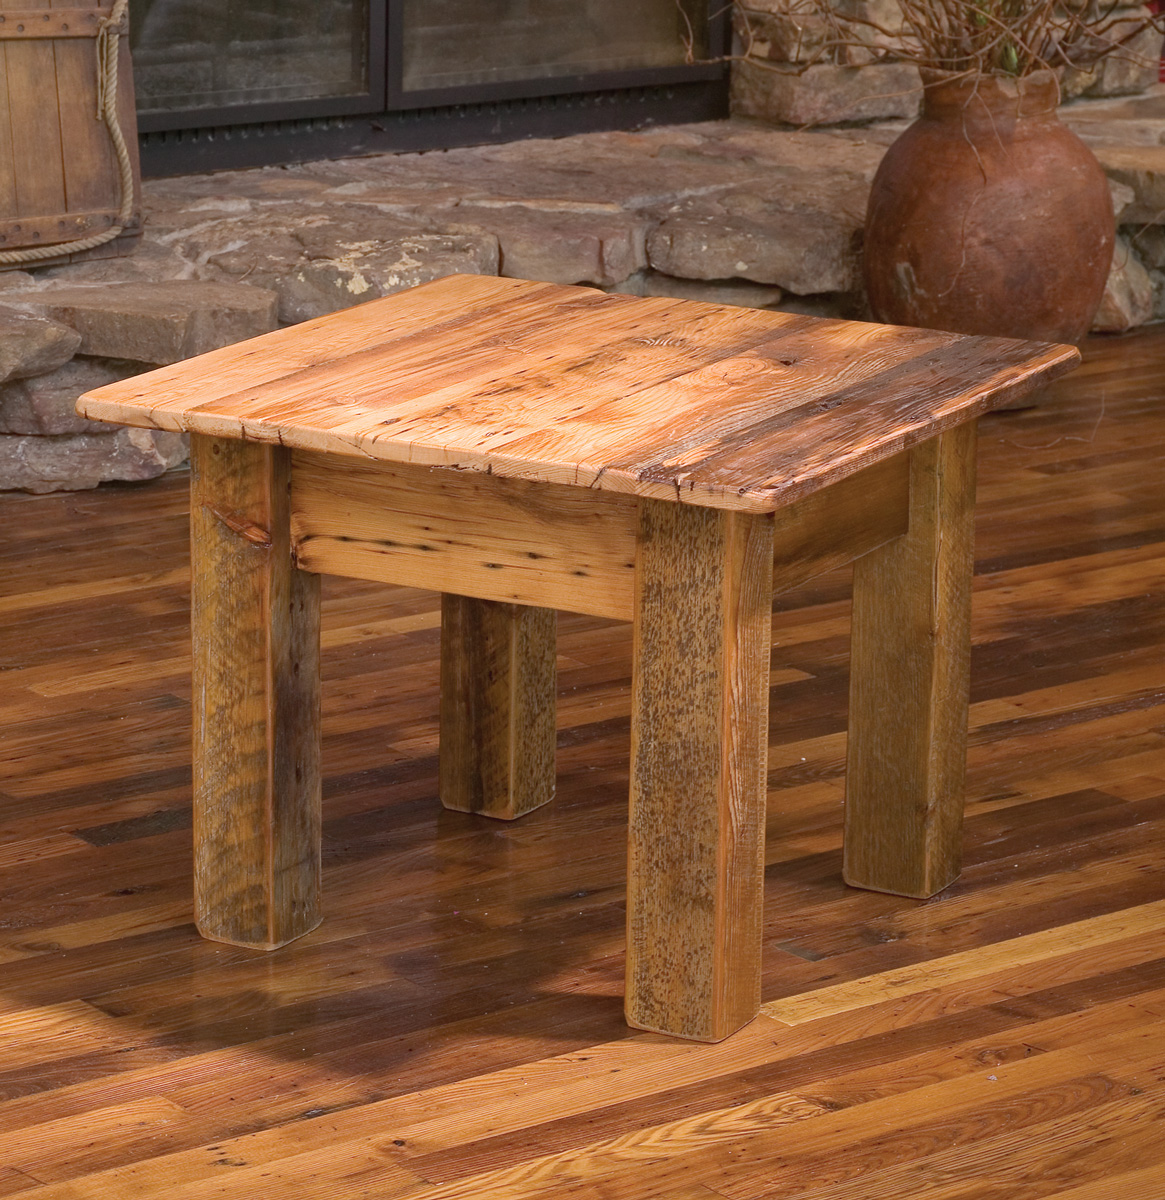 Reclaimed barn wood furniture rustic furniture mall by timber creek - How to make rustic wood furniture ...